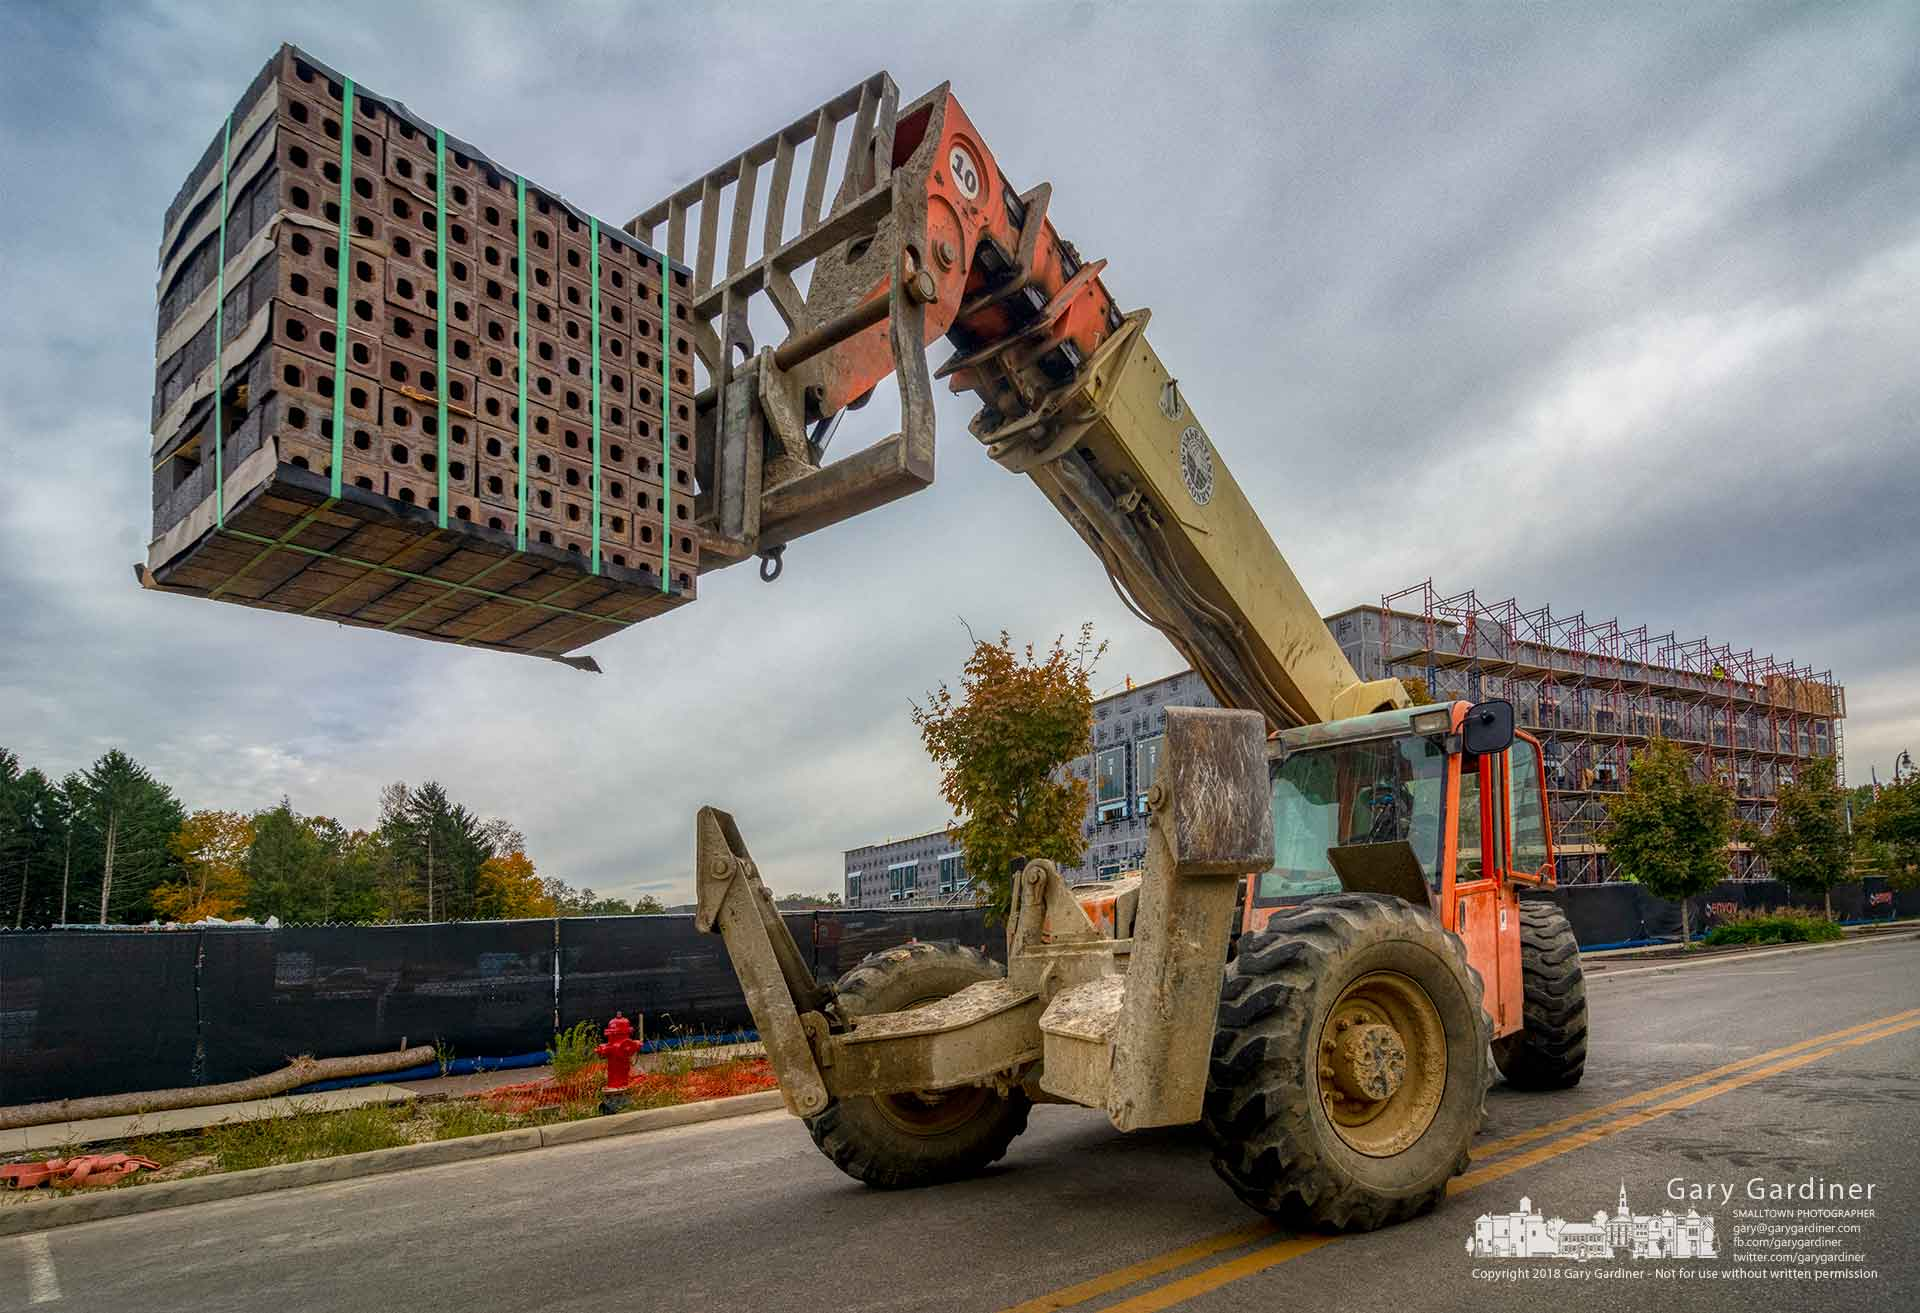 An operator offloads palettes of bricks delivered Thursday to the construction site for the Envoy coworking office building at Meridian Way in Westar. My Final Photo for Oct. 25, 2018.